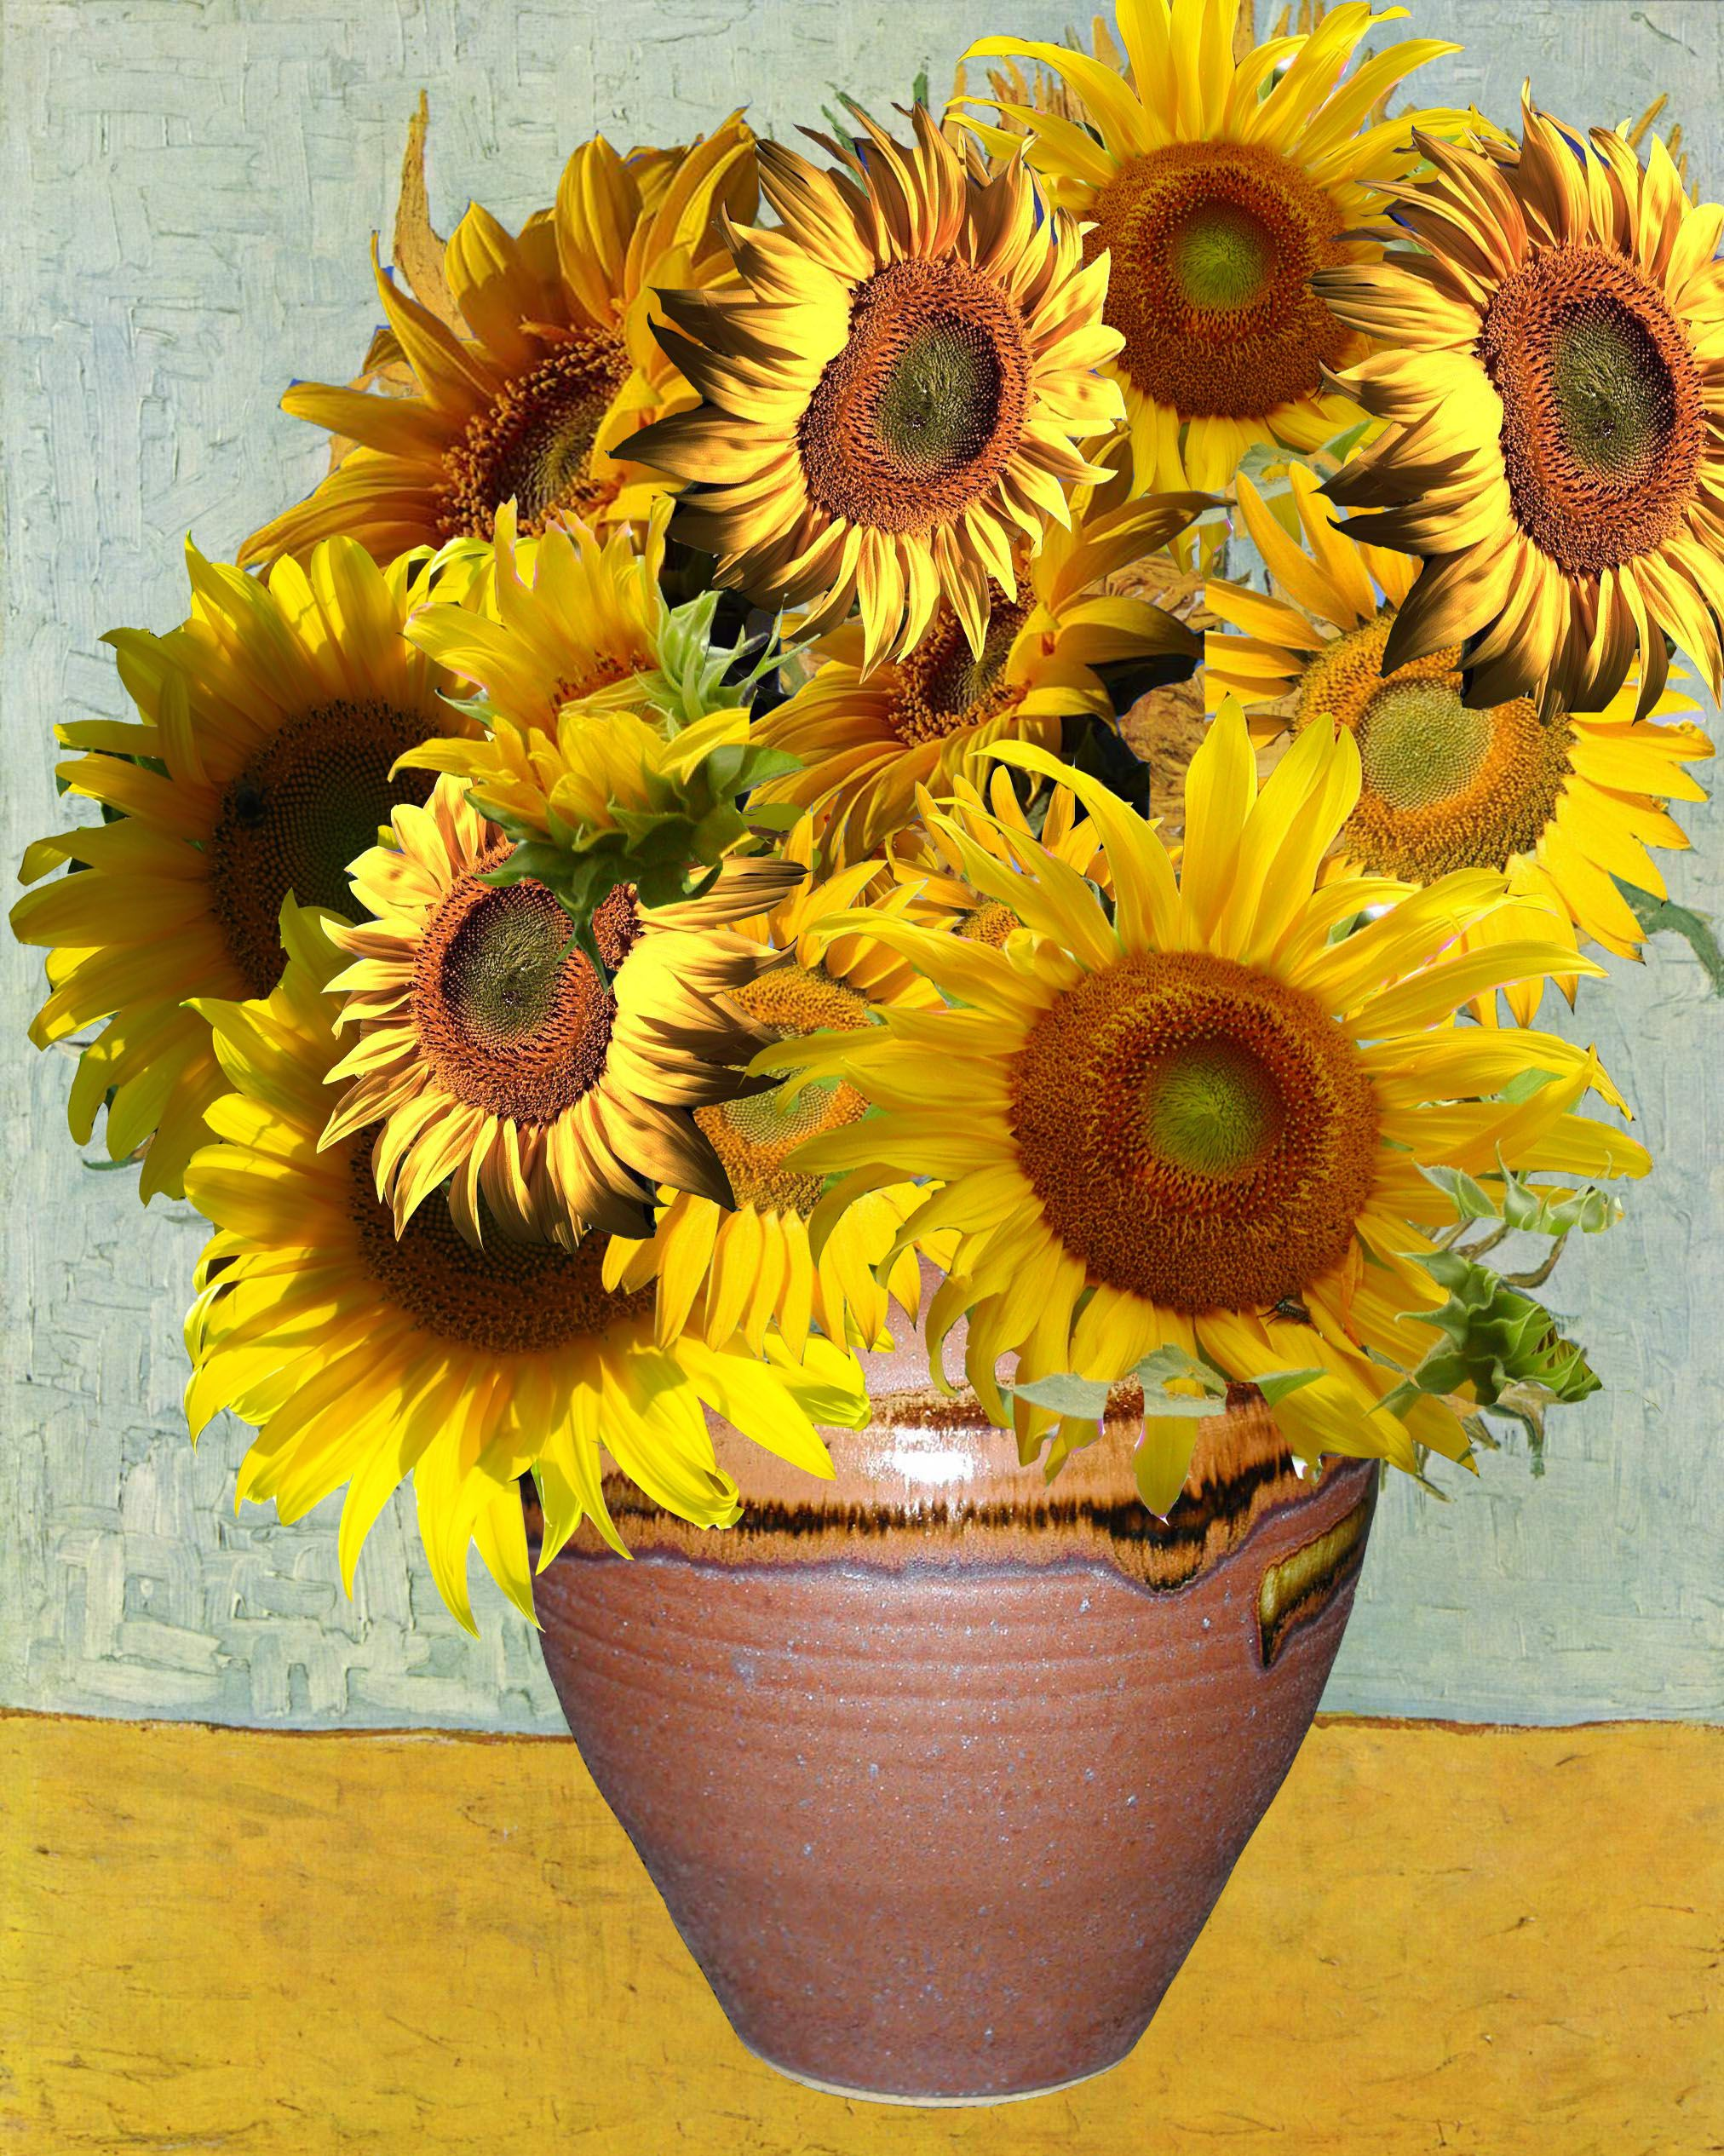 van gogh-sunflowers | Vincent van Gogh, 39;? and Search